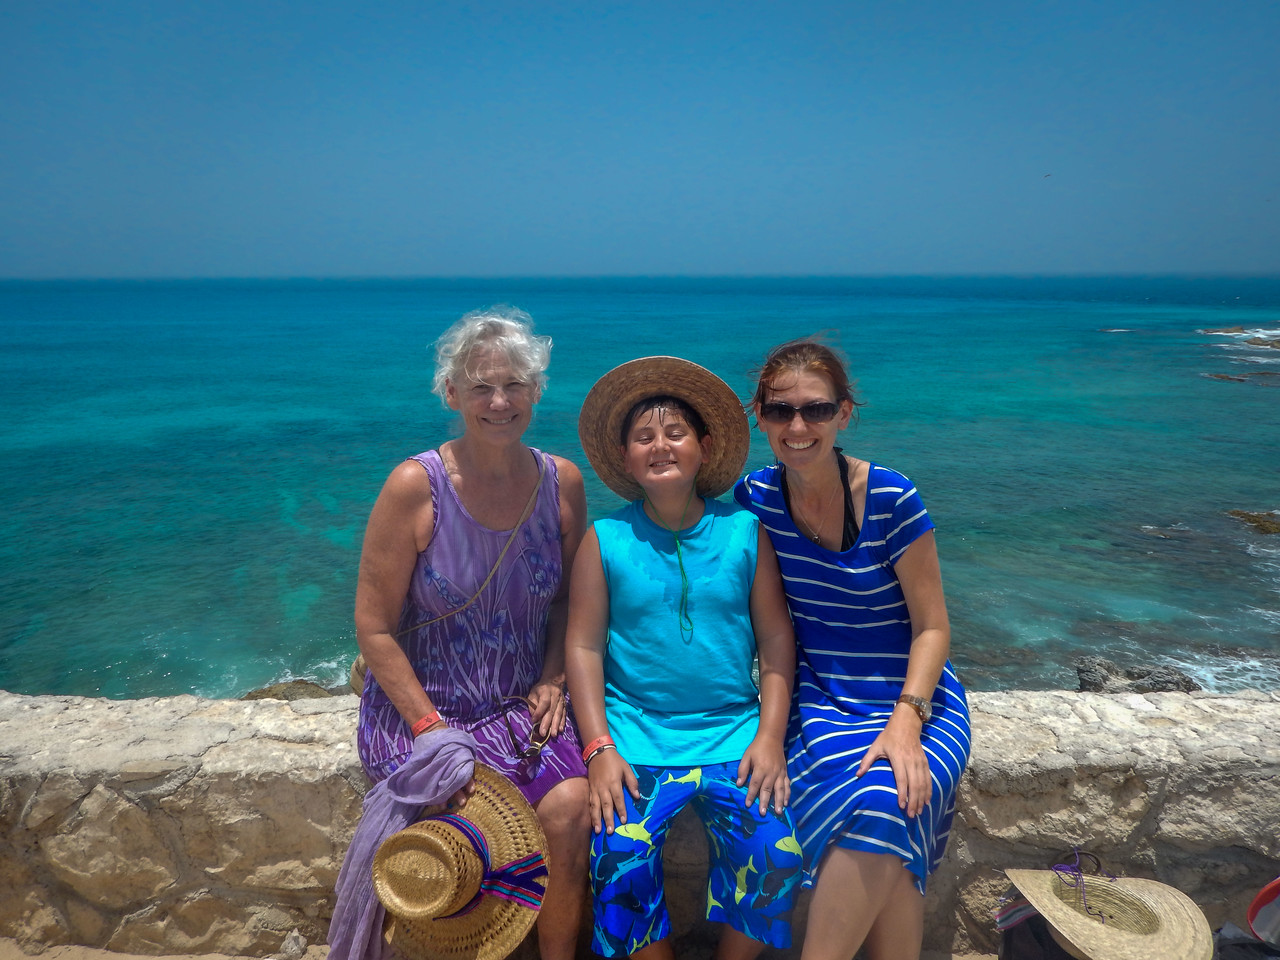 Traveling with my aunt and nephews in Isla Mujeres, Mexico.